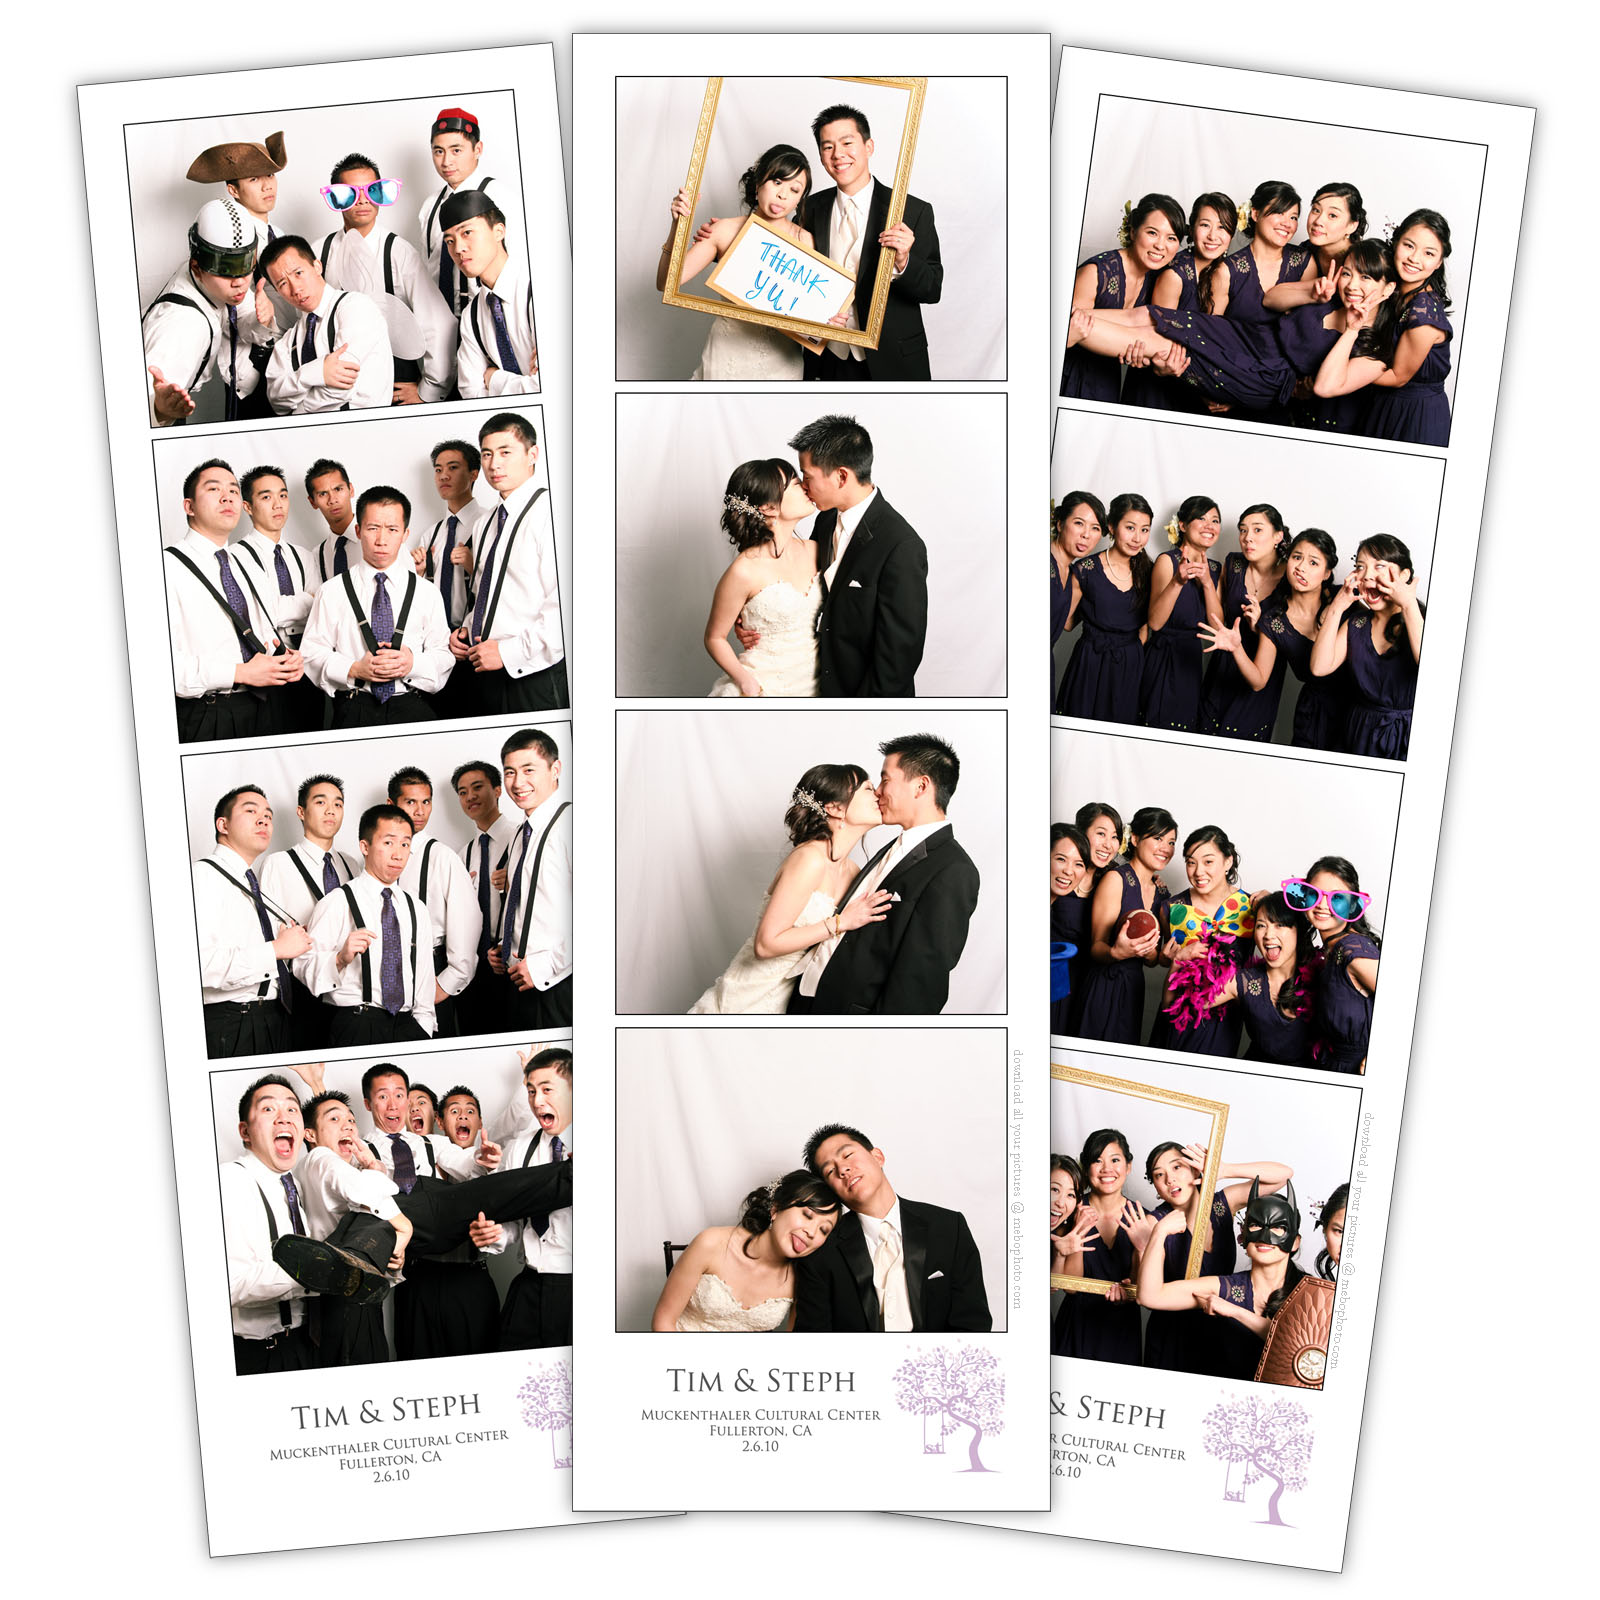 Pricing and packages los angeles photobooth orange county stripem package 995 845 solutioingenieria Image collections